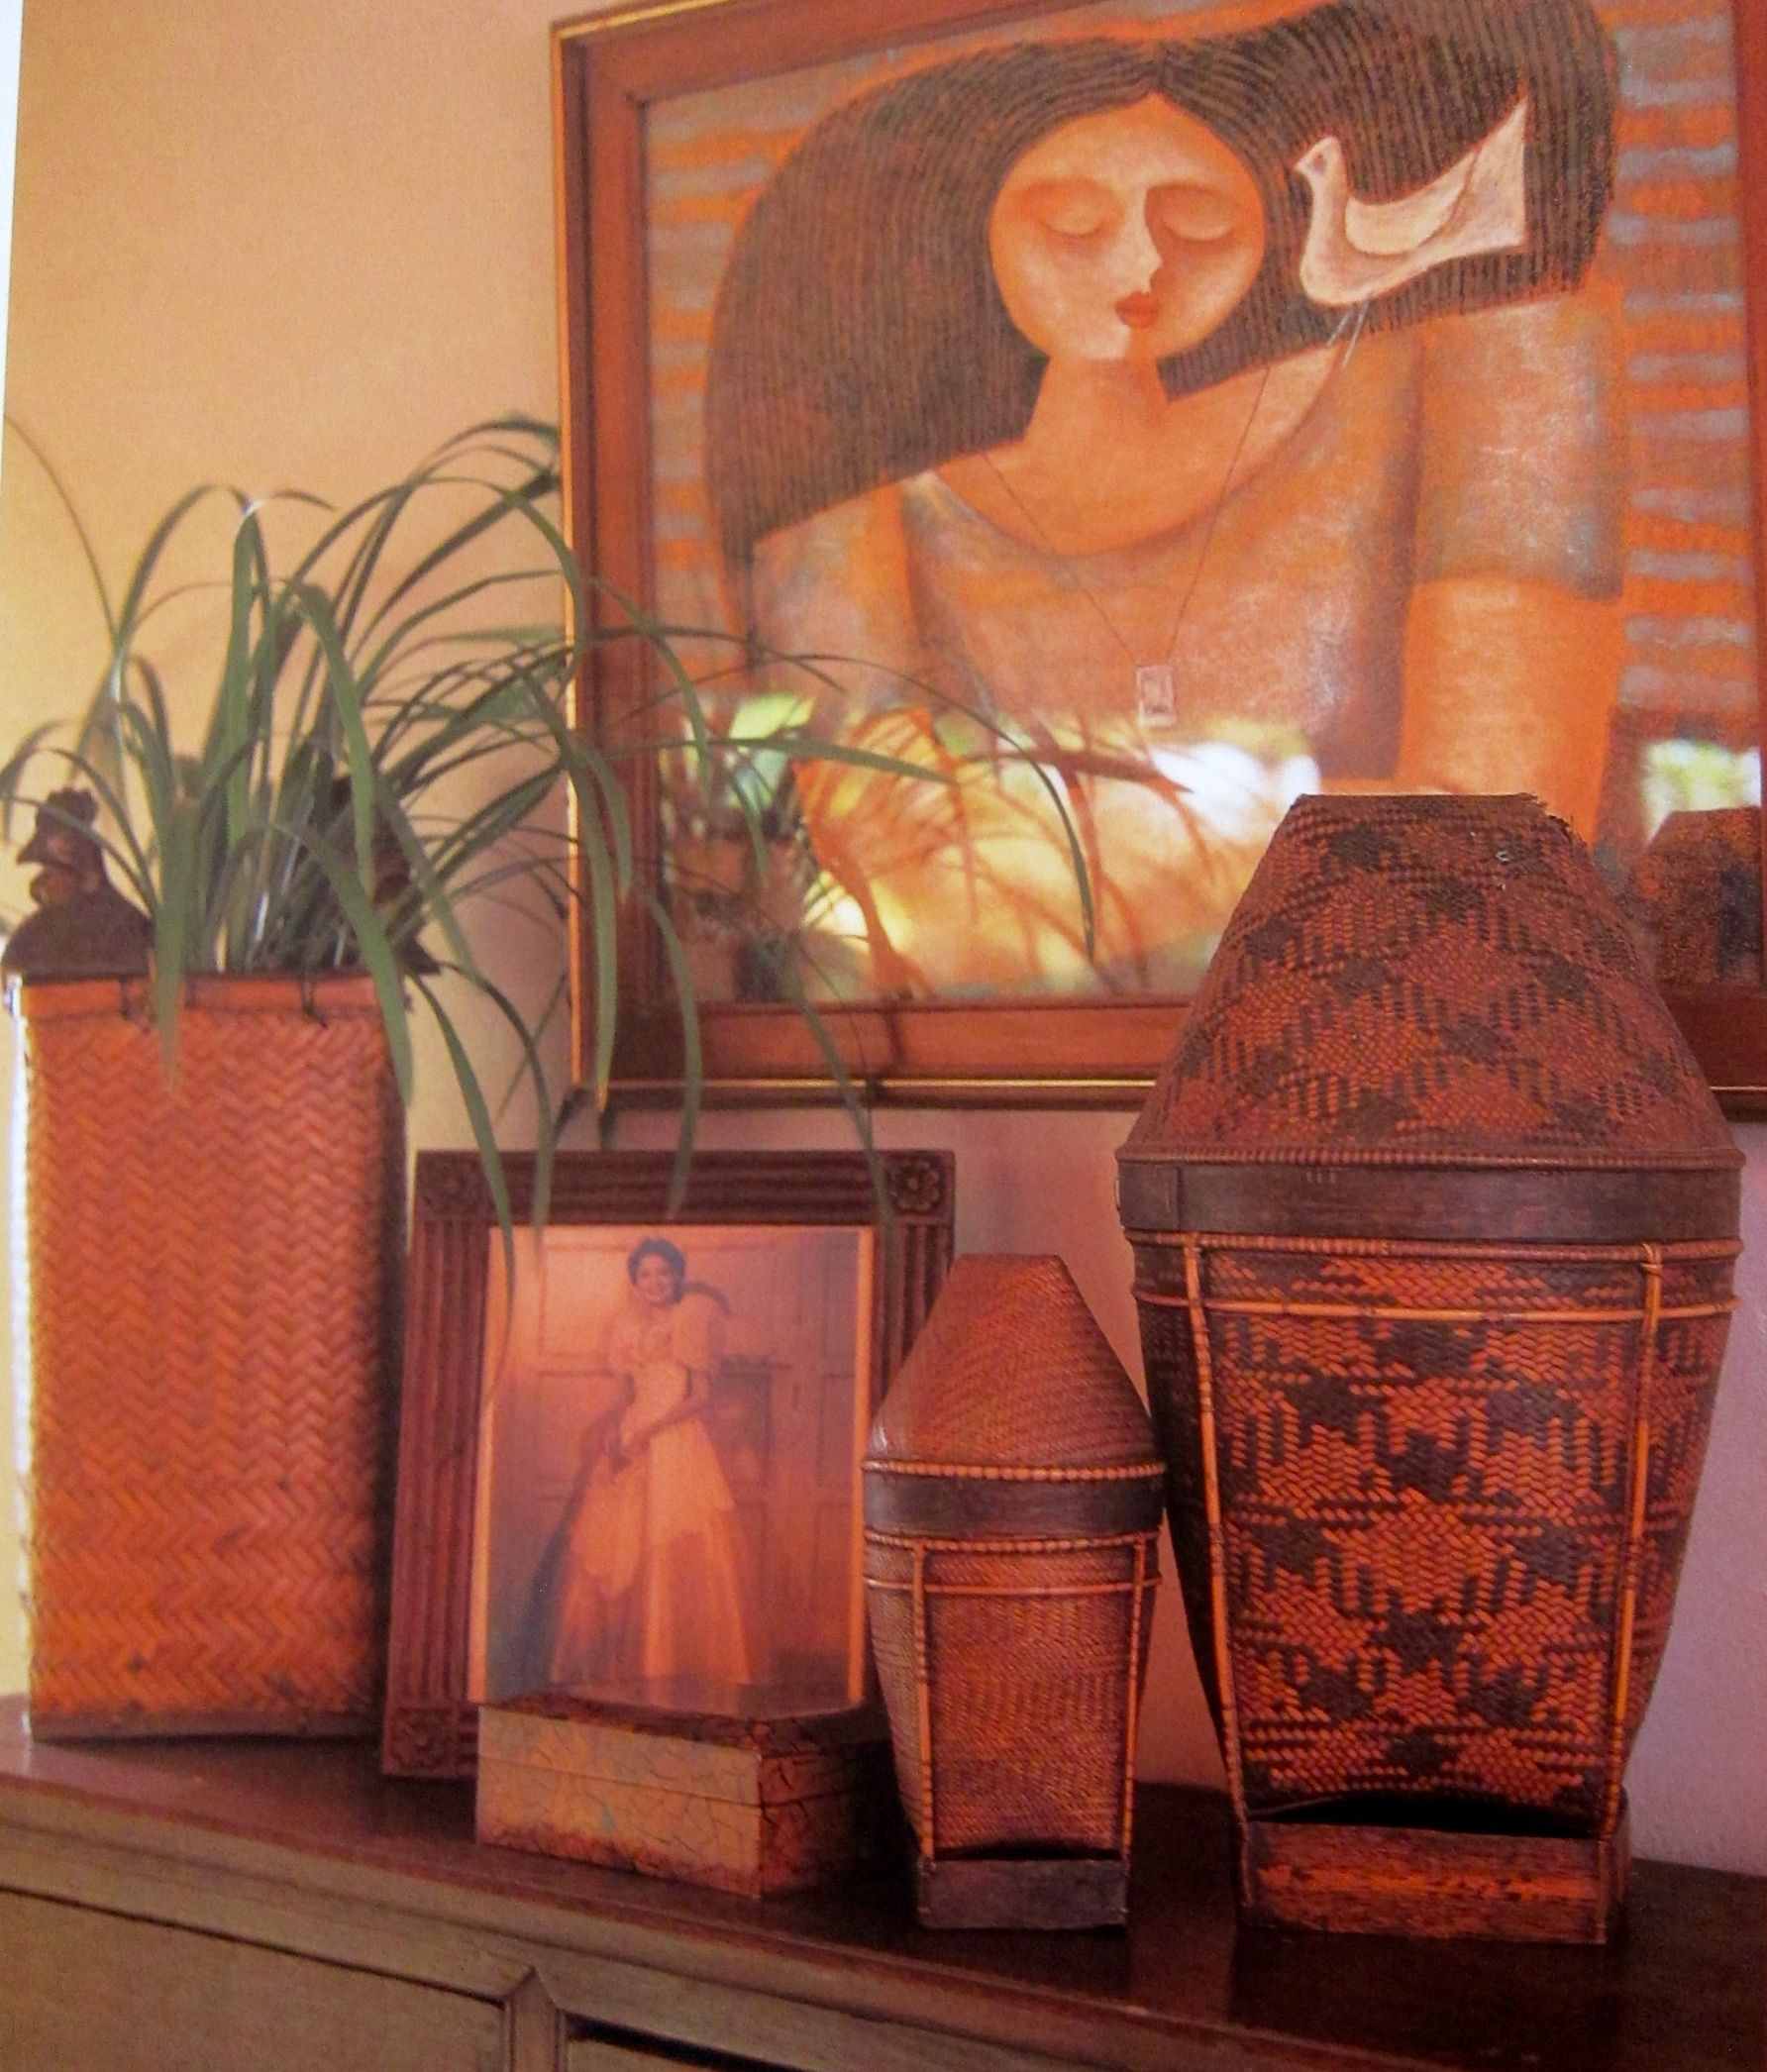 Filipino Home Styling. Ethnic Filipino Basketry And Contemporary Pinoy Art.